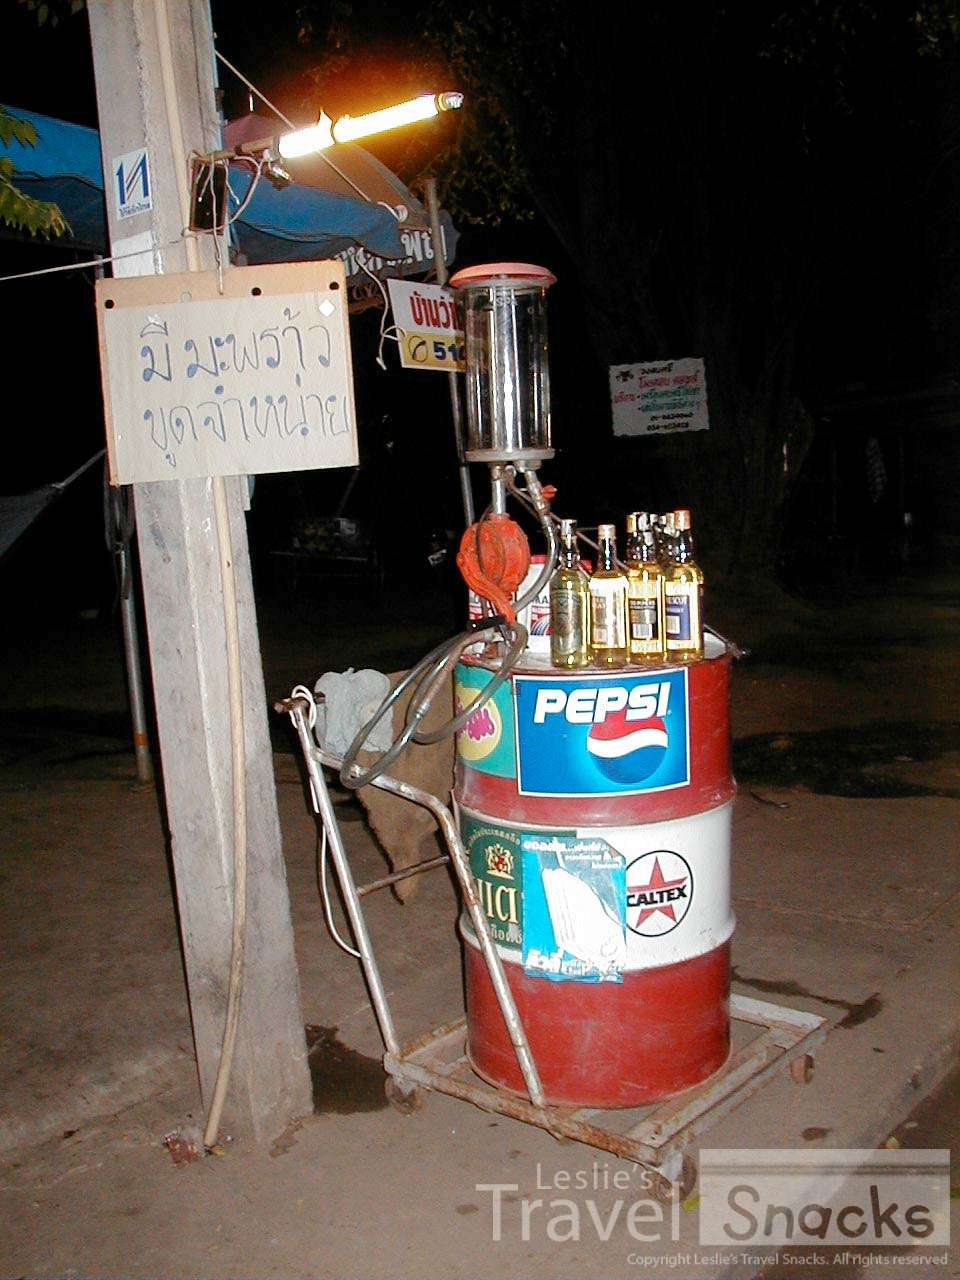 This is a typical Thai petrol station. LOL